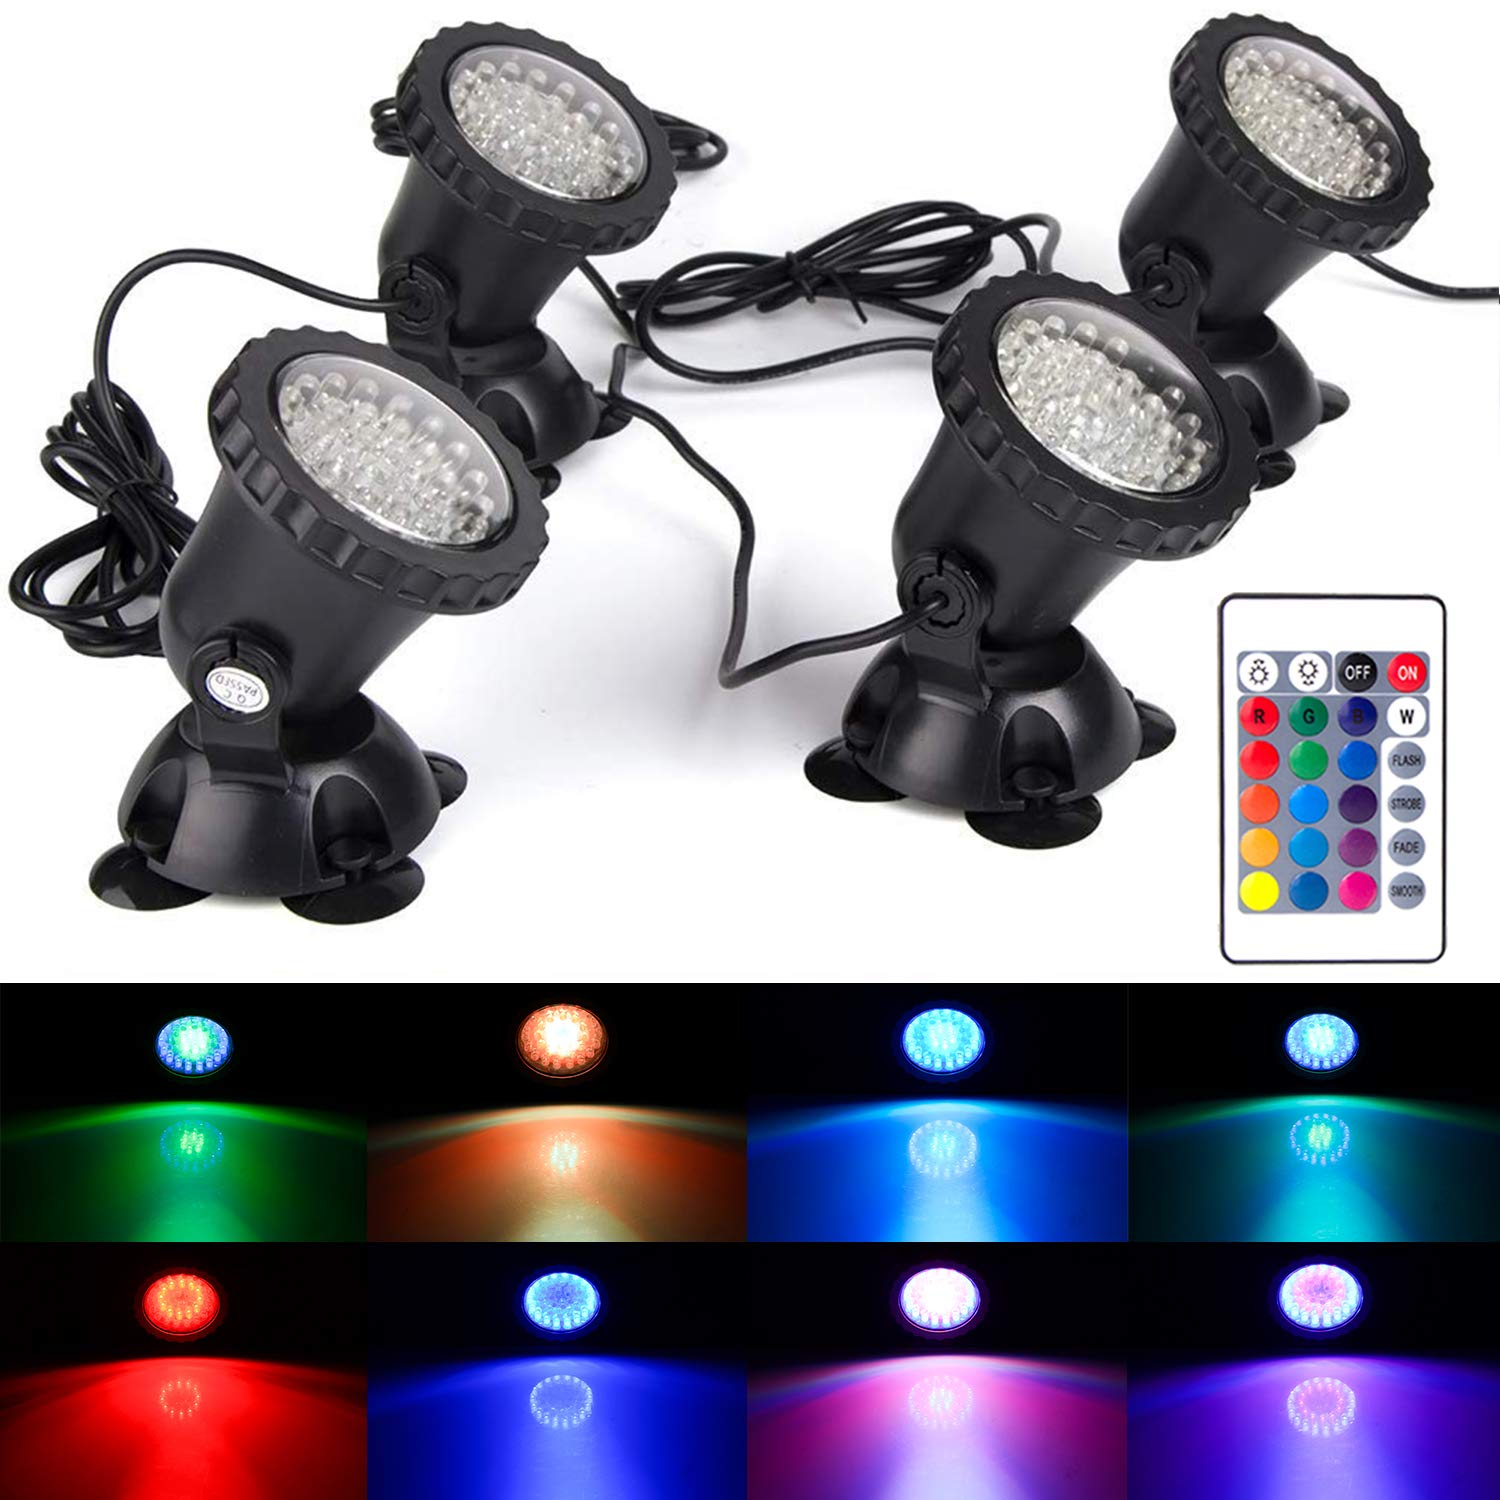 S SMIFUL Lawn Light Waterproof IP68 Submersible Spotlight with 36 LED Color Changing Spot Light for Aquarium Garden Pond Pool Tank Fountain Waterfall (Set of 4)